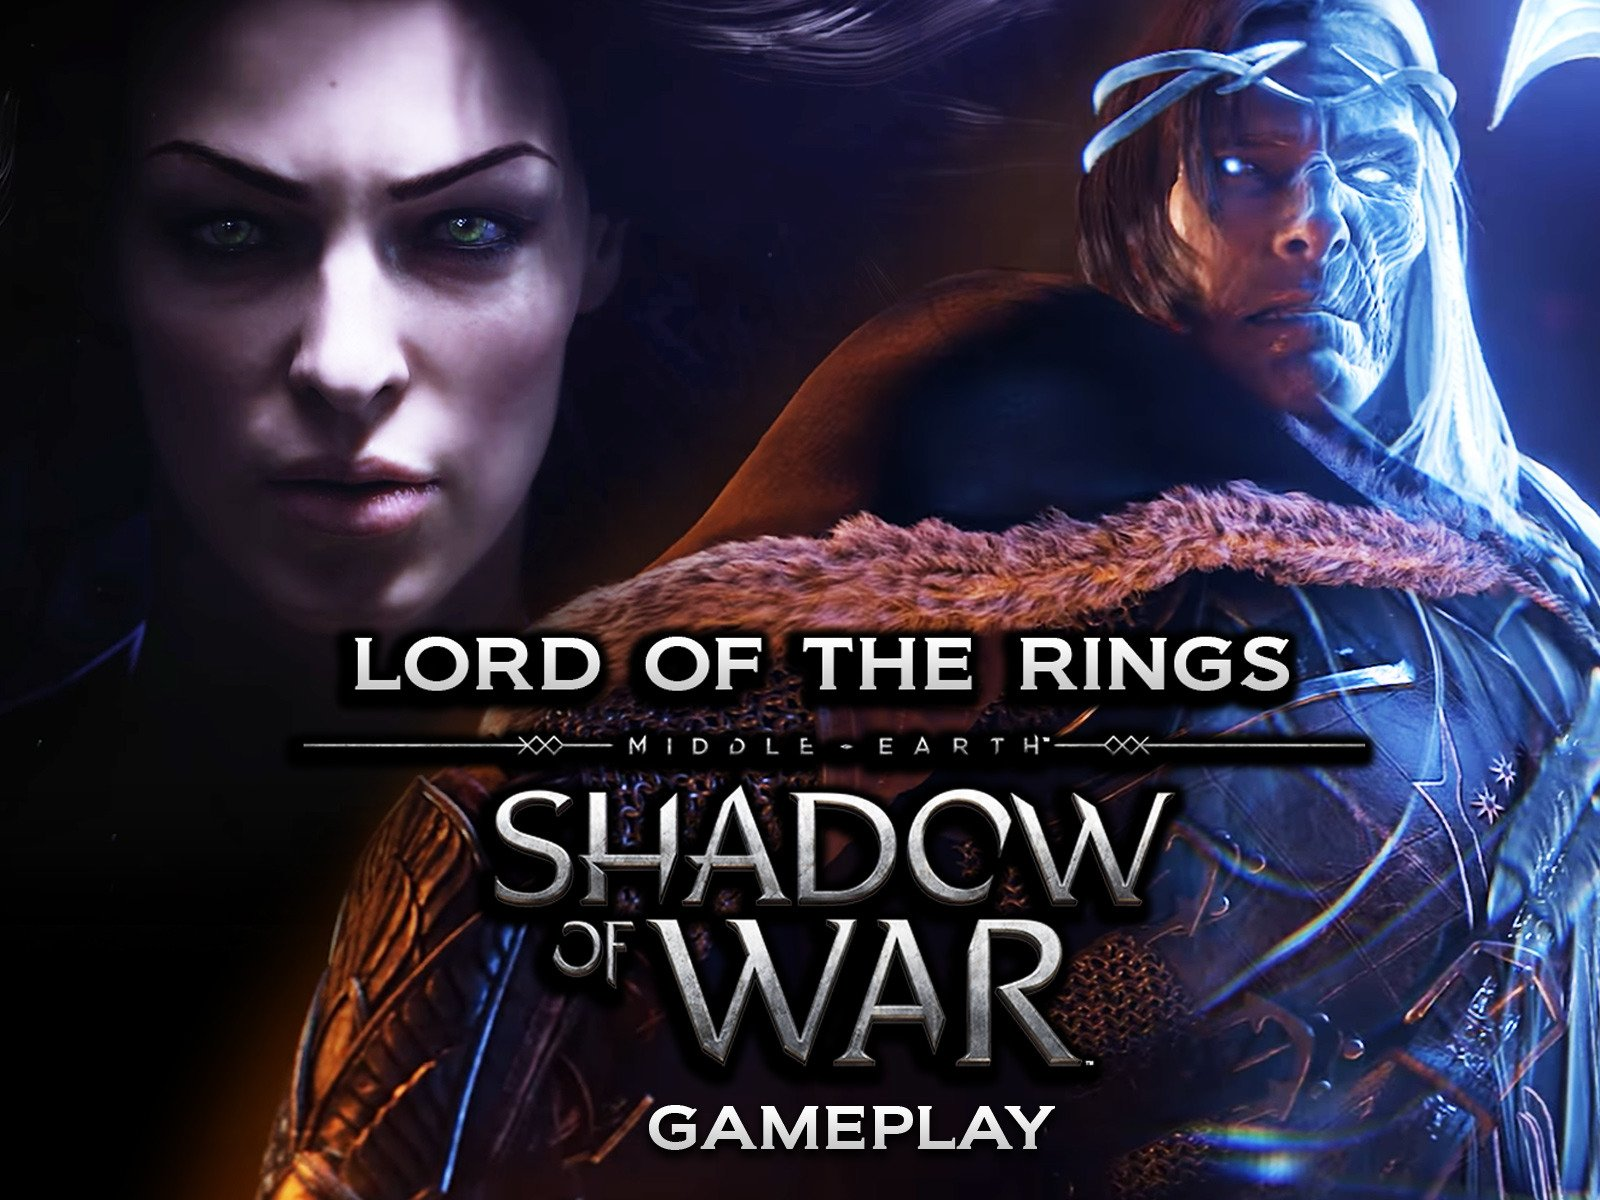 Clip: Lord of the Rings: Middle Earth Shadow of War Gameplay on Amazon Prime Video UK